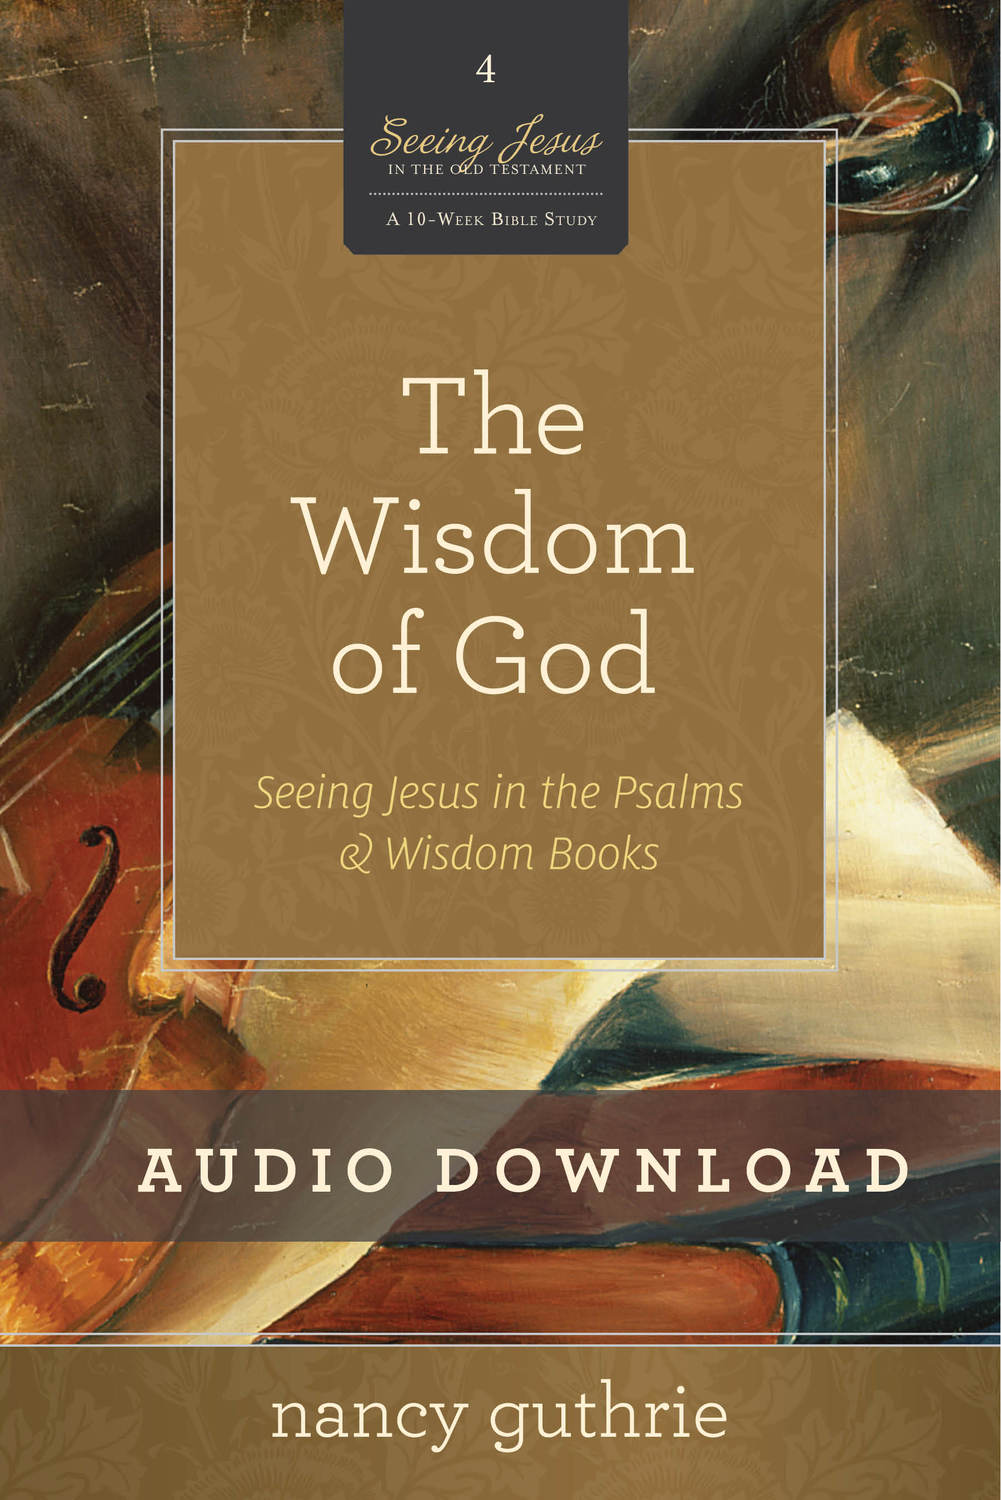 The Wisdom of God Audio Downloads